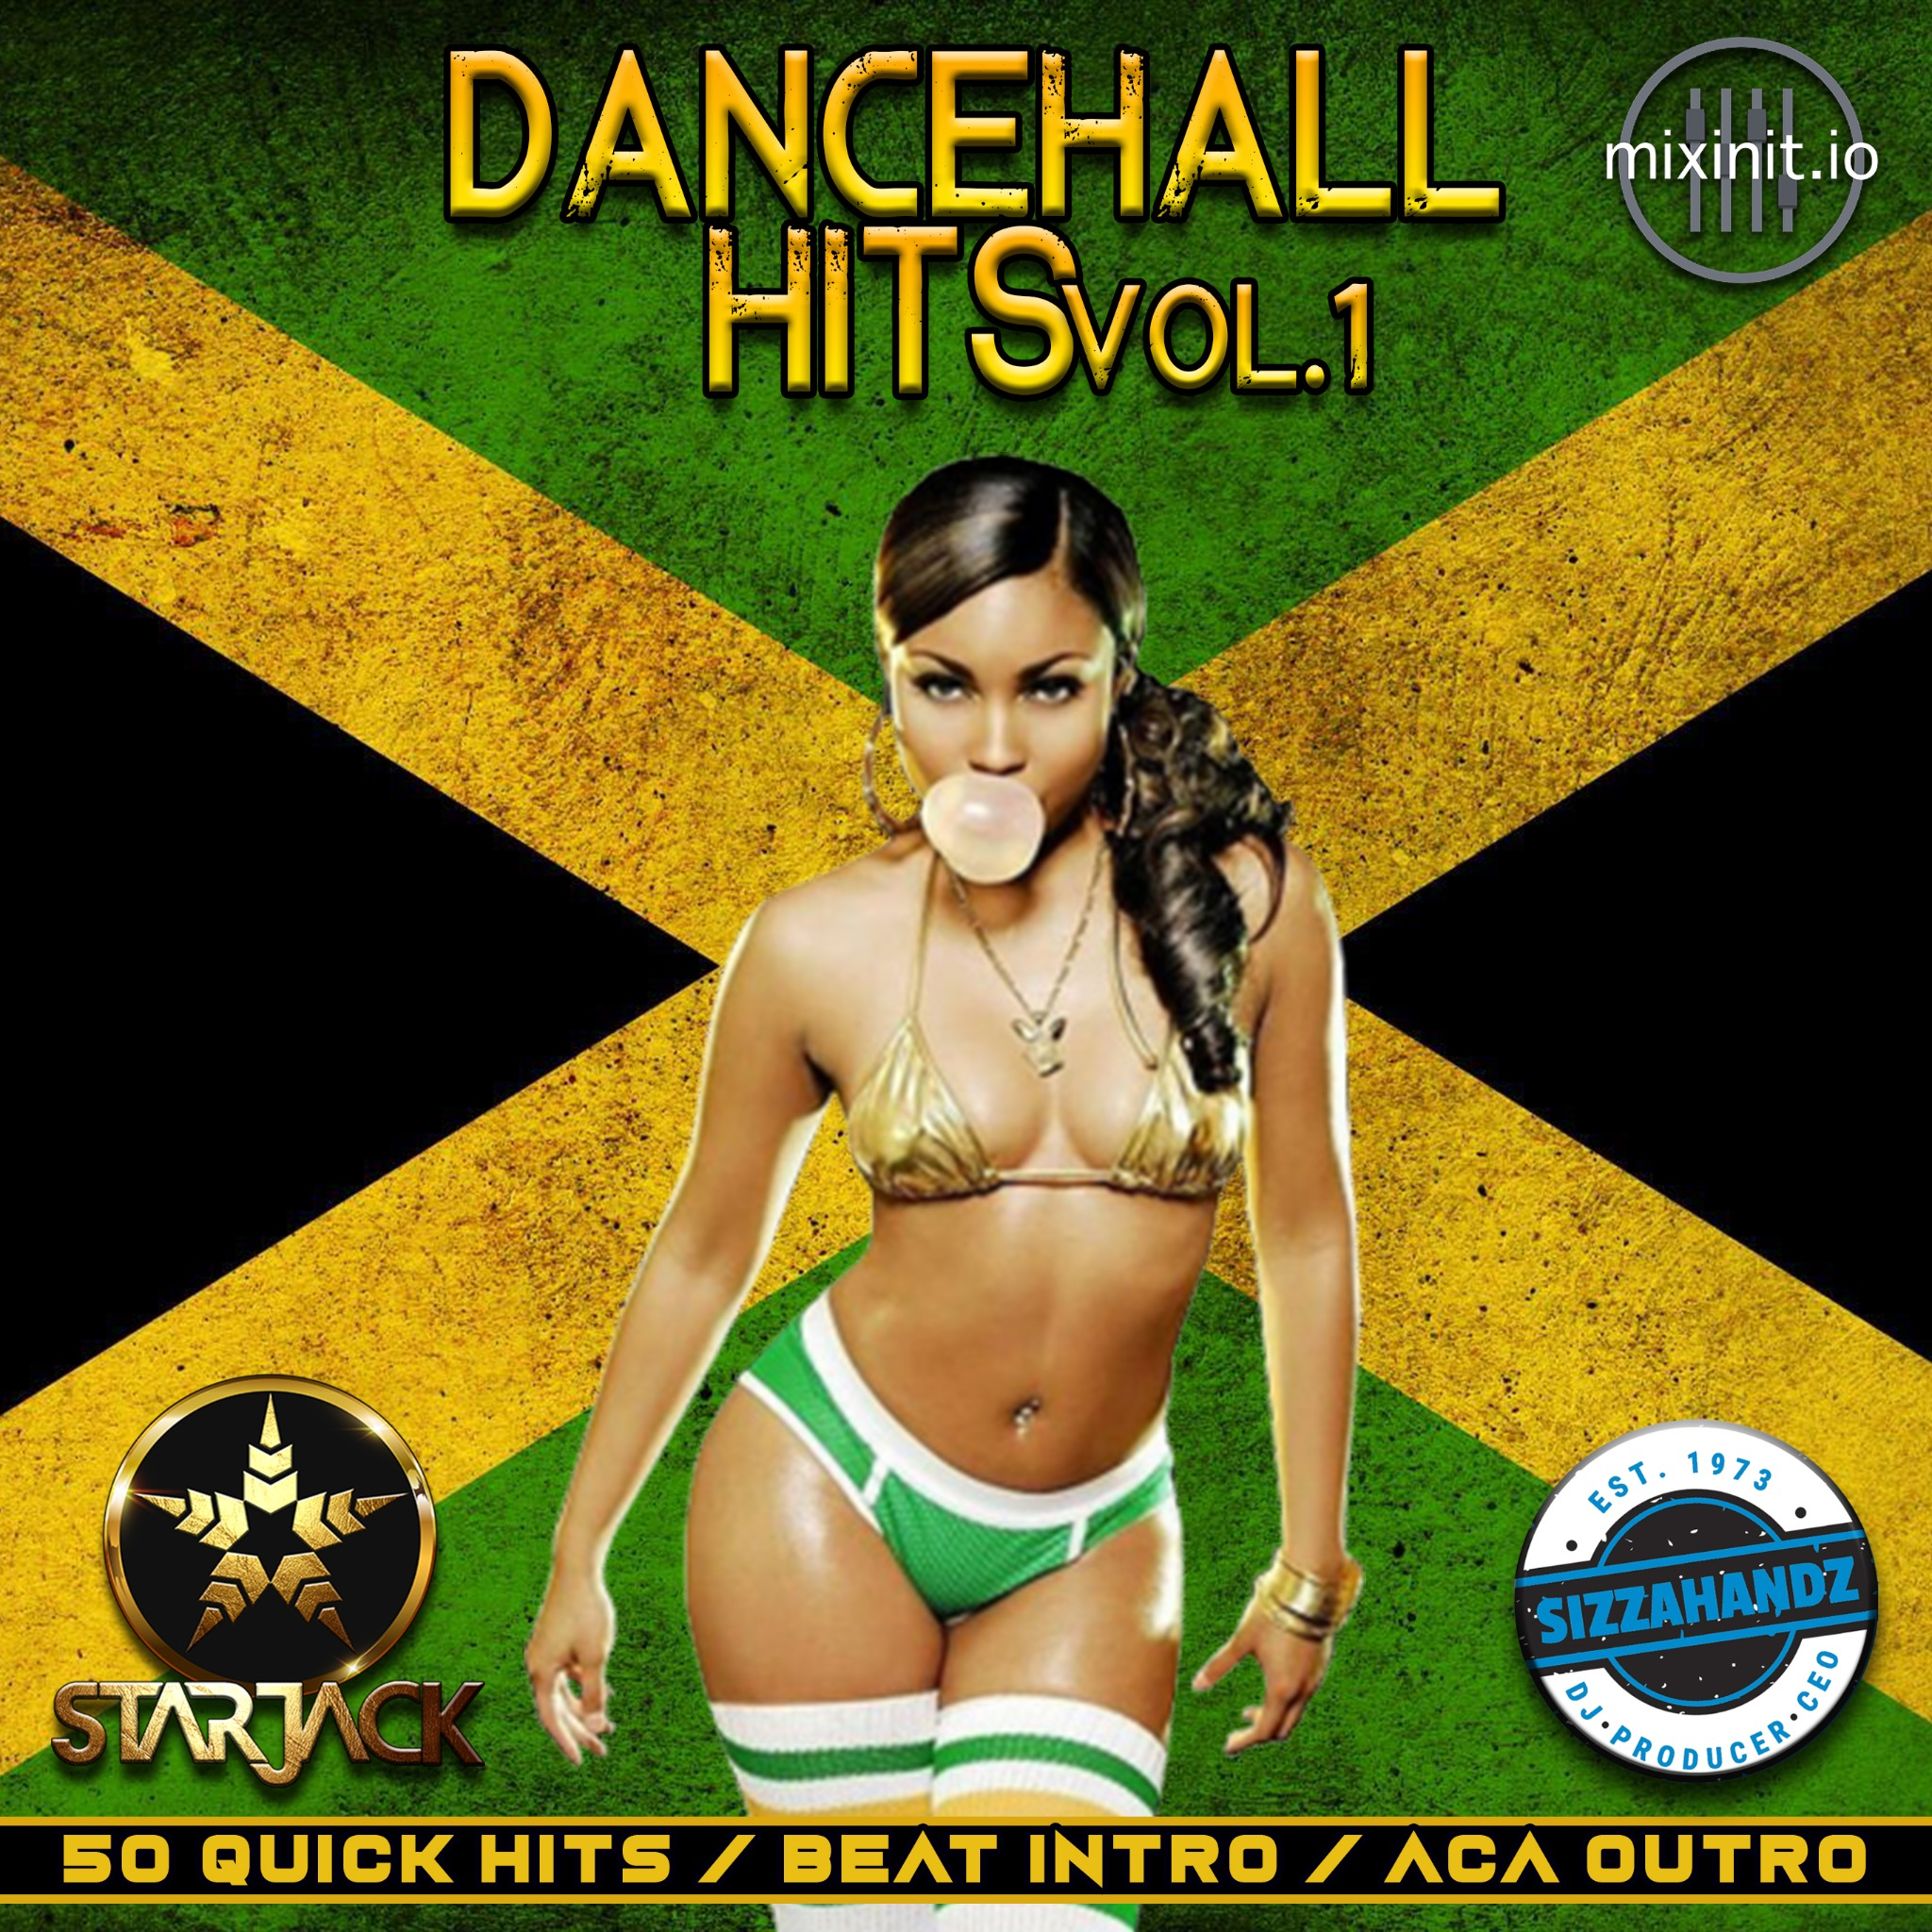 Starjack & Sizzahandz - Dancehall Hits Vol. 1 (Quick Hit Acapella Out)